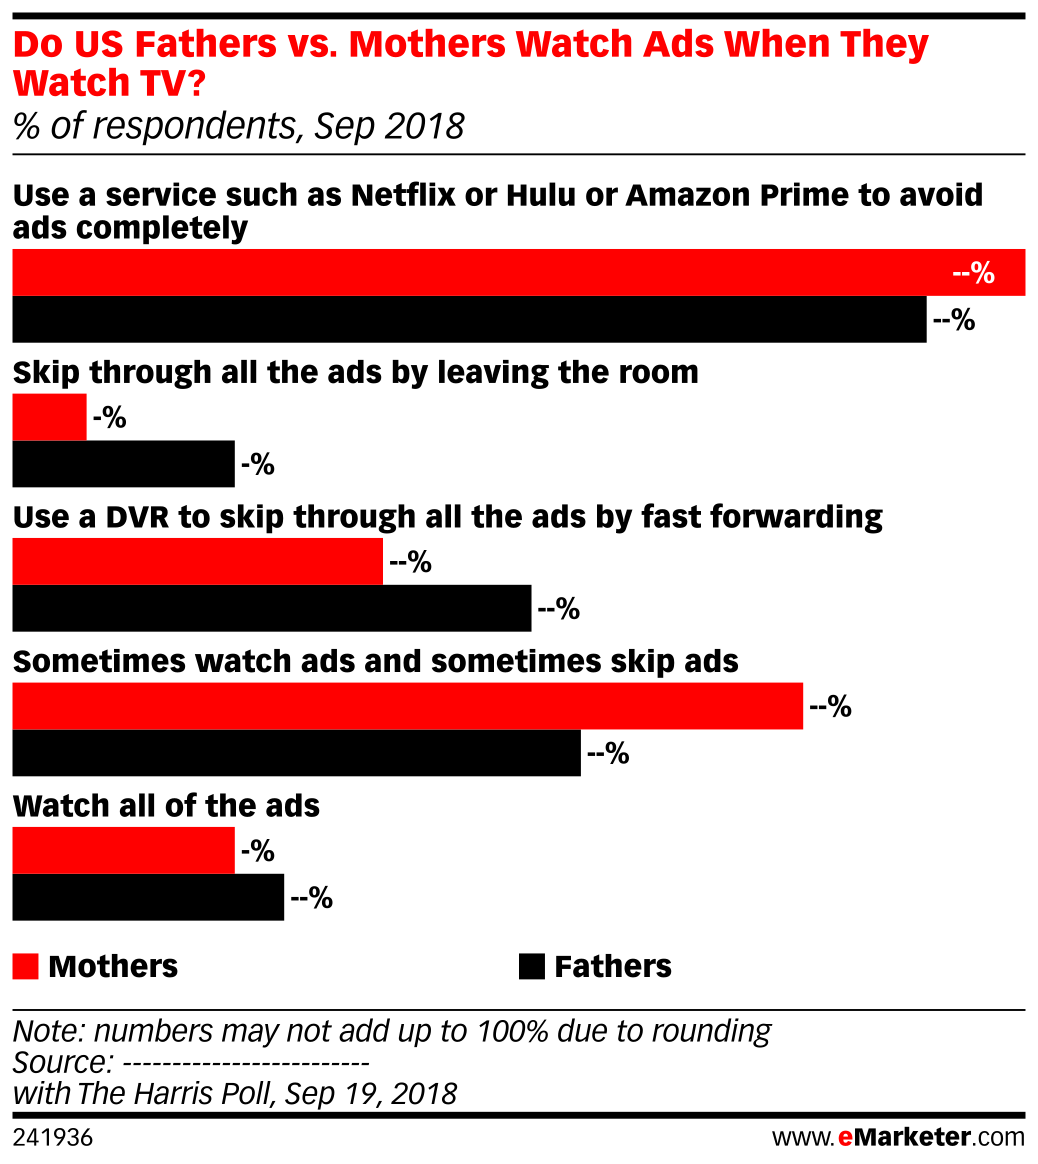 Do US Fathers vs. Mothers Watch Ads When They Watch TV? (% of respondents, Sep 2018)